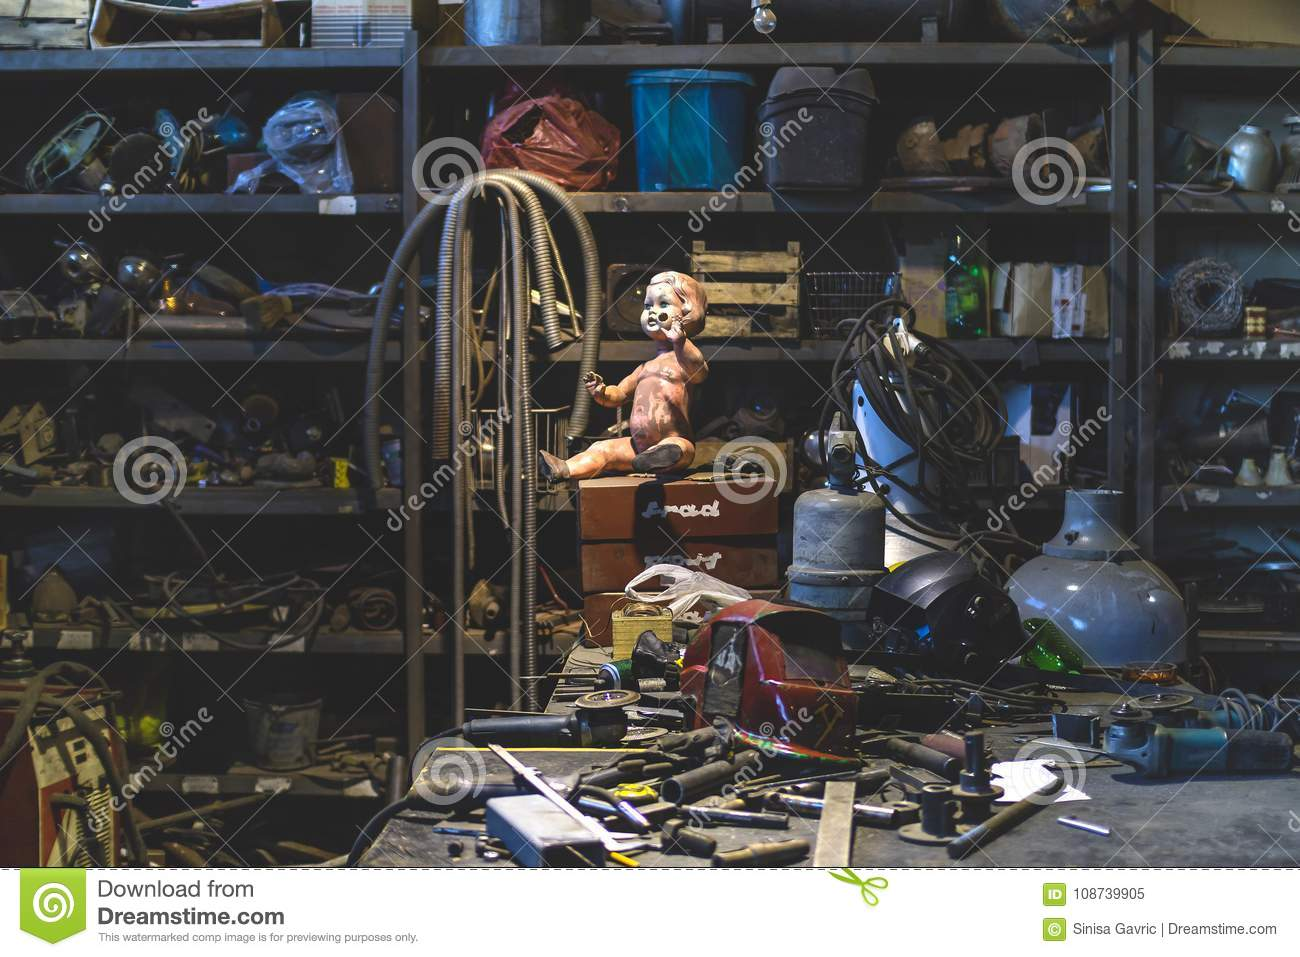 Dirty plastic baby doll posing inside of a metal shop